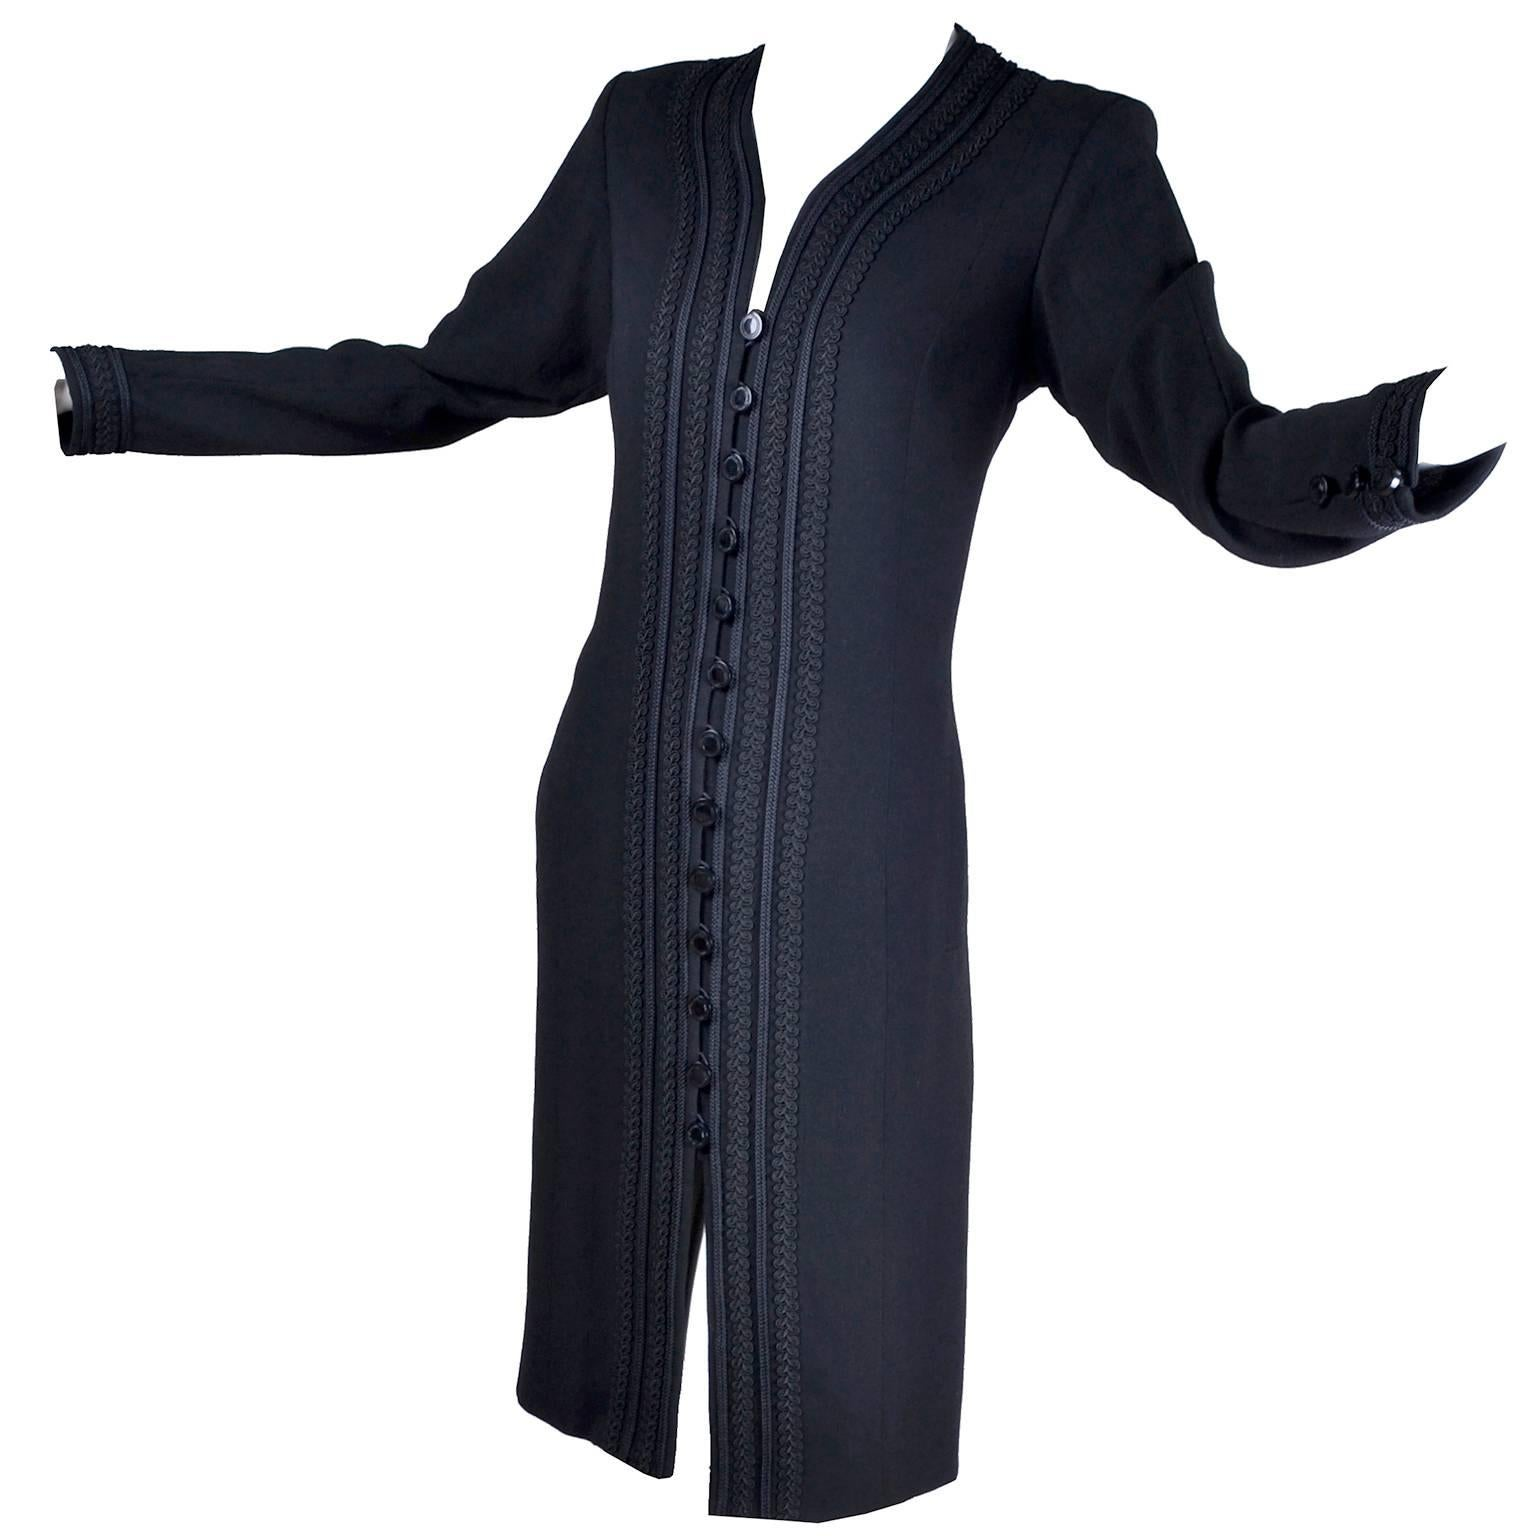 aaac65467c Vintage Yves Saint Laurent Day Dresses - 237 For Sale at 1stdibs